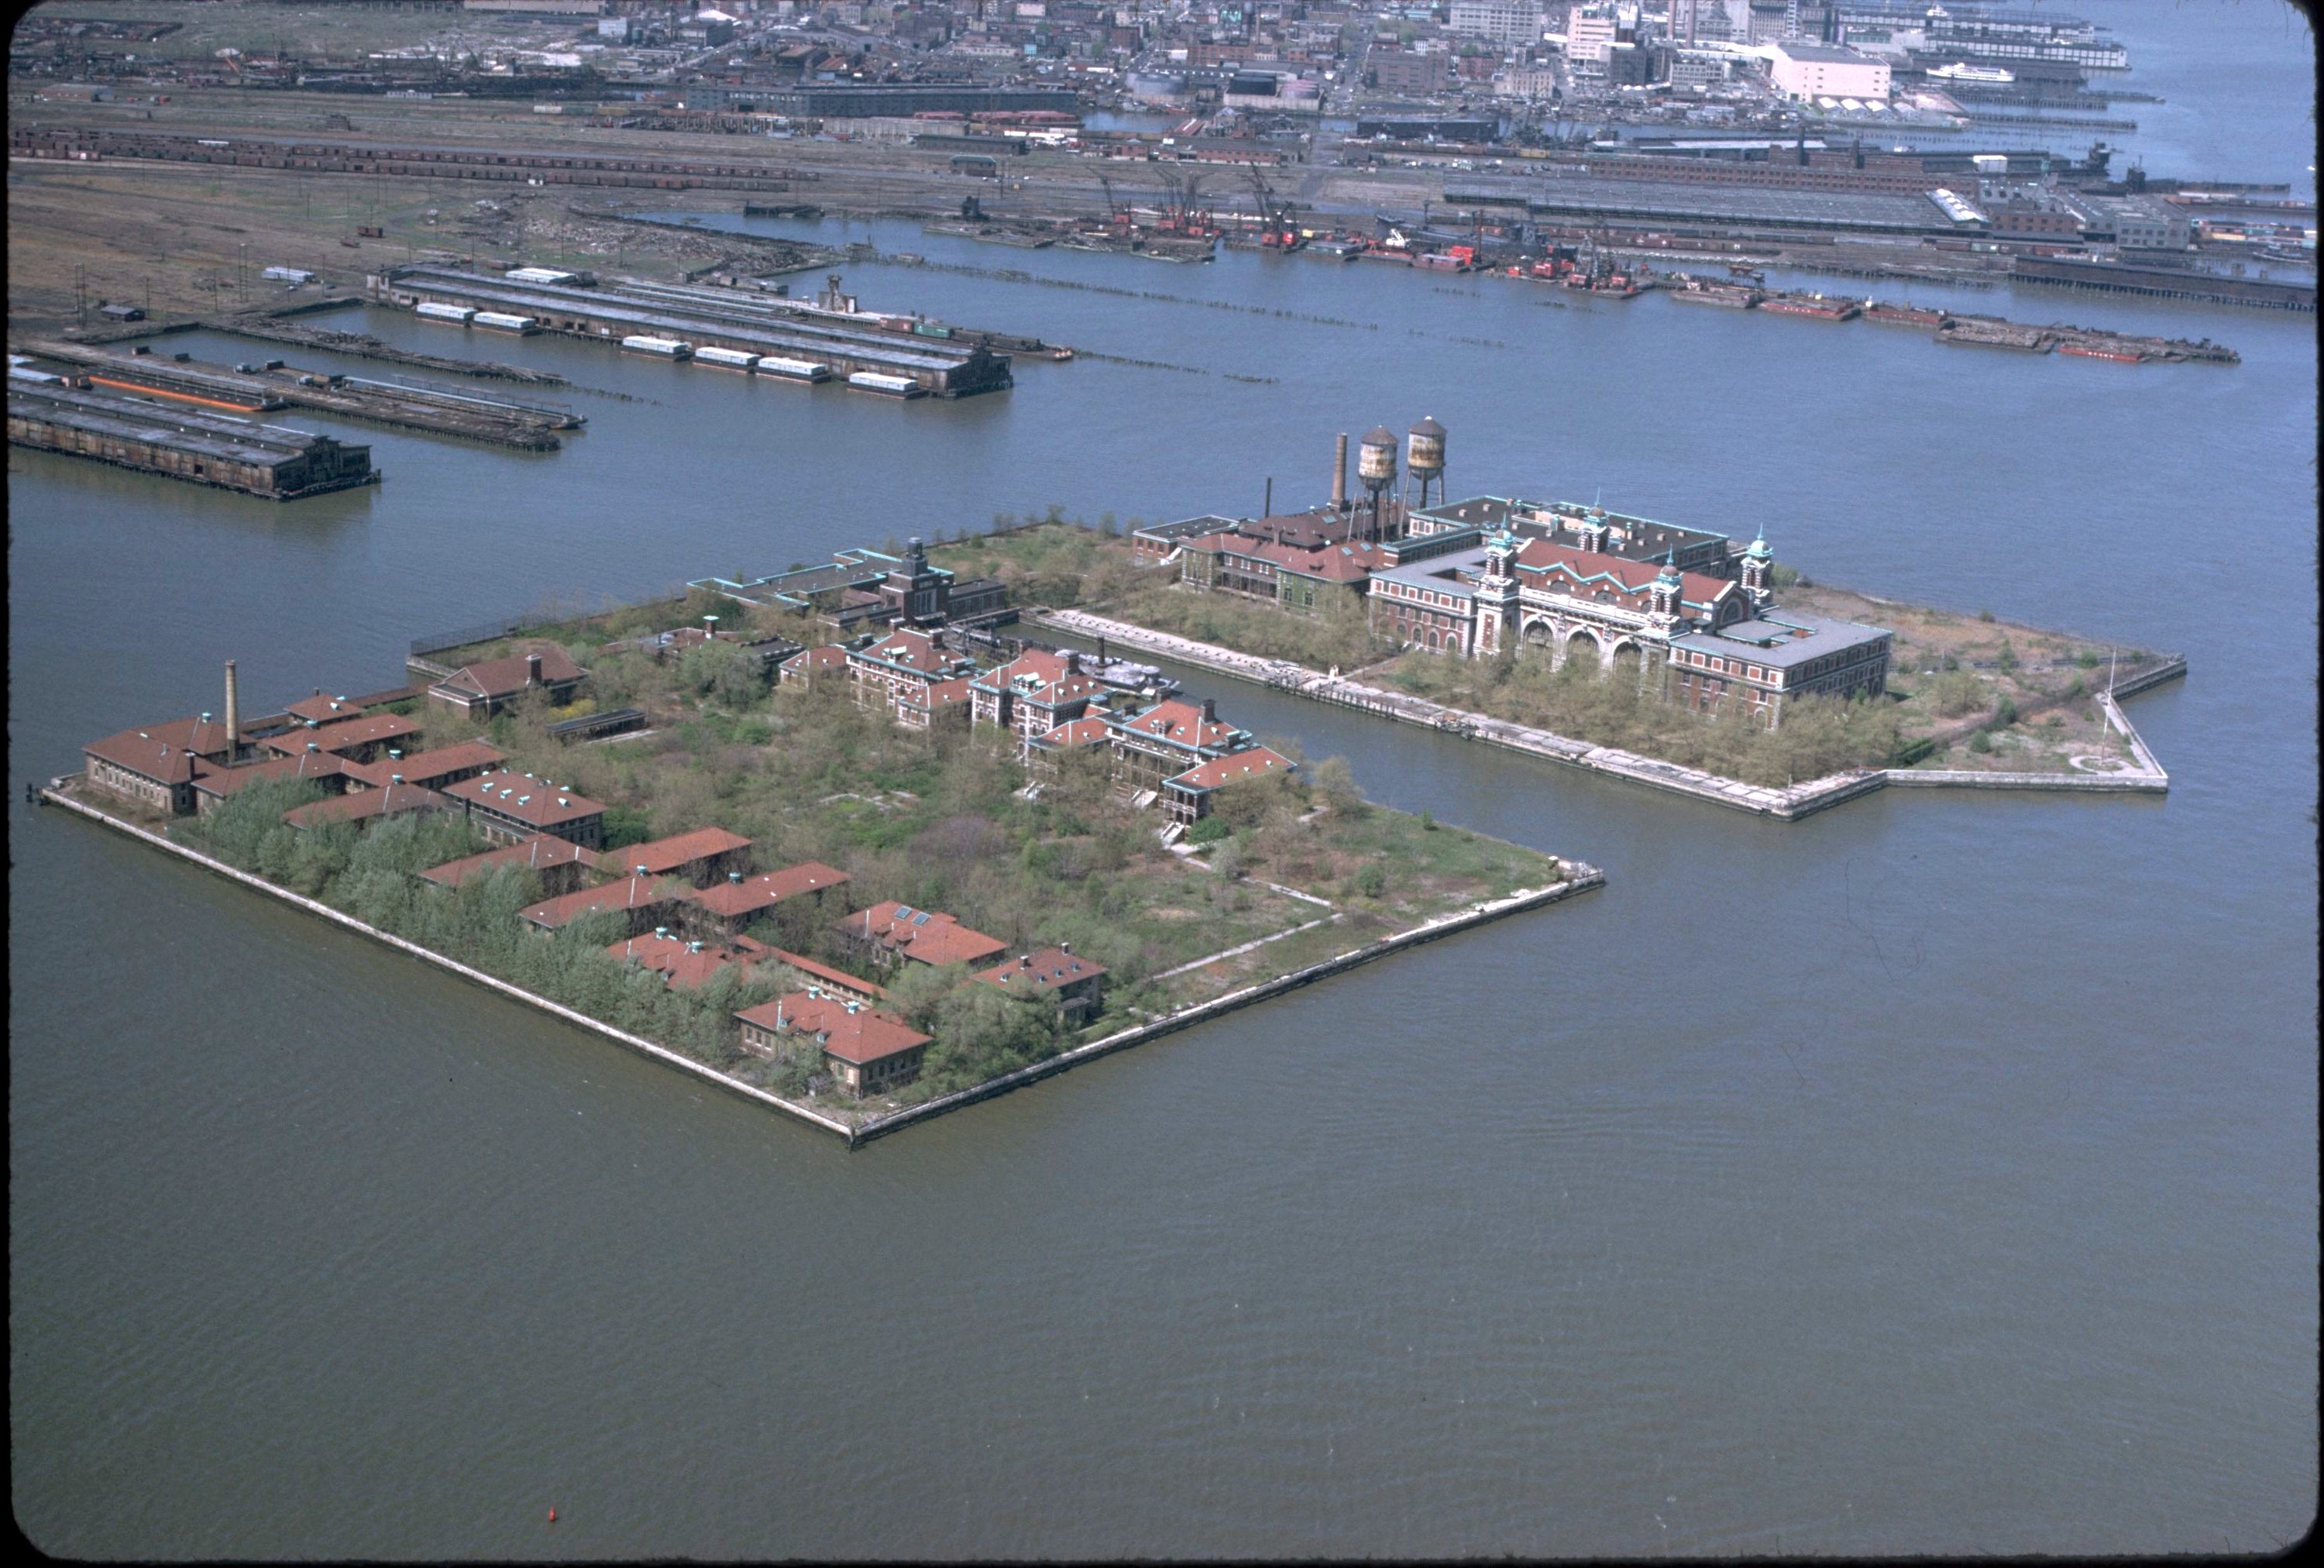 https://static.blog4ever.com/2016/09/822431/Ellis_island_air_photo.jpg